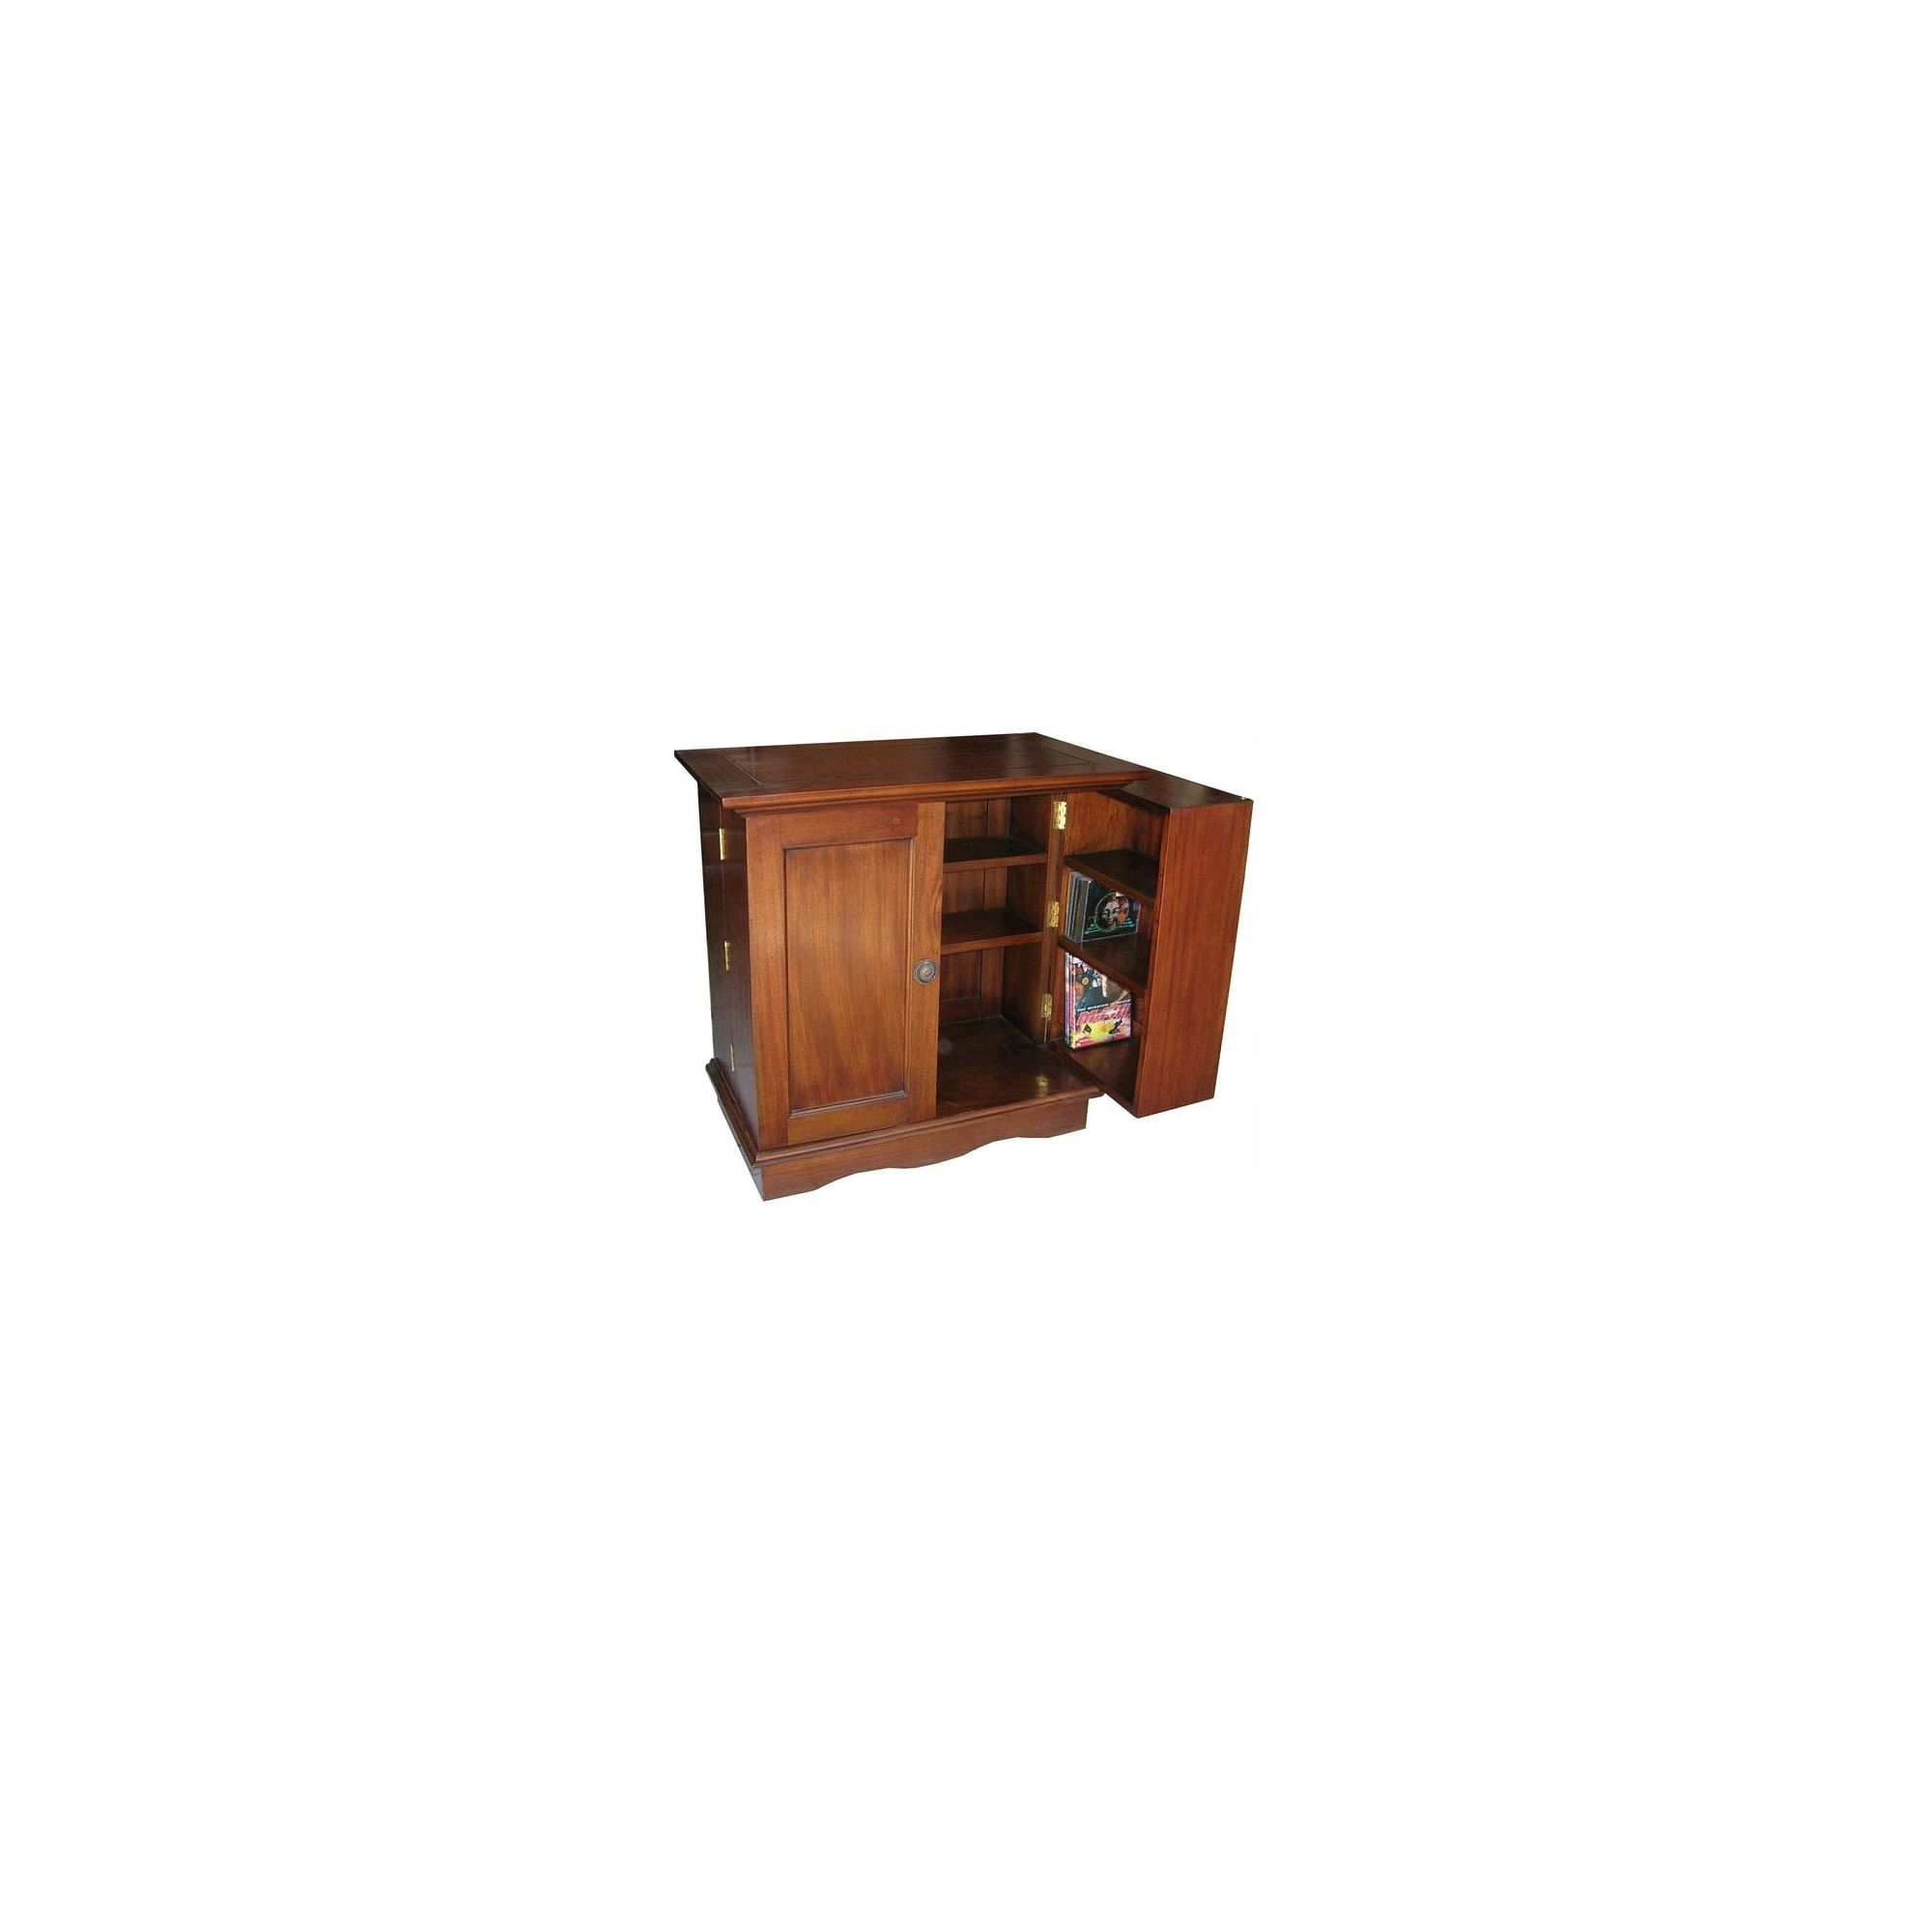 Lock stock and barrel Mahogany Media End Table in Mahogany at Tesco Direct